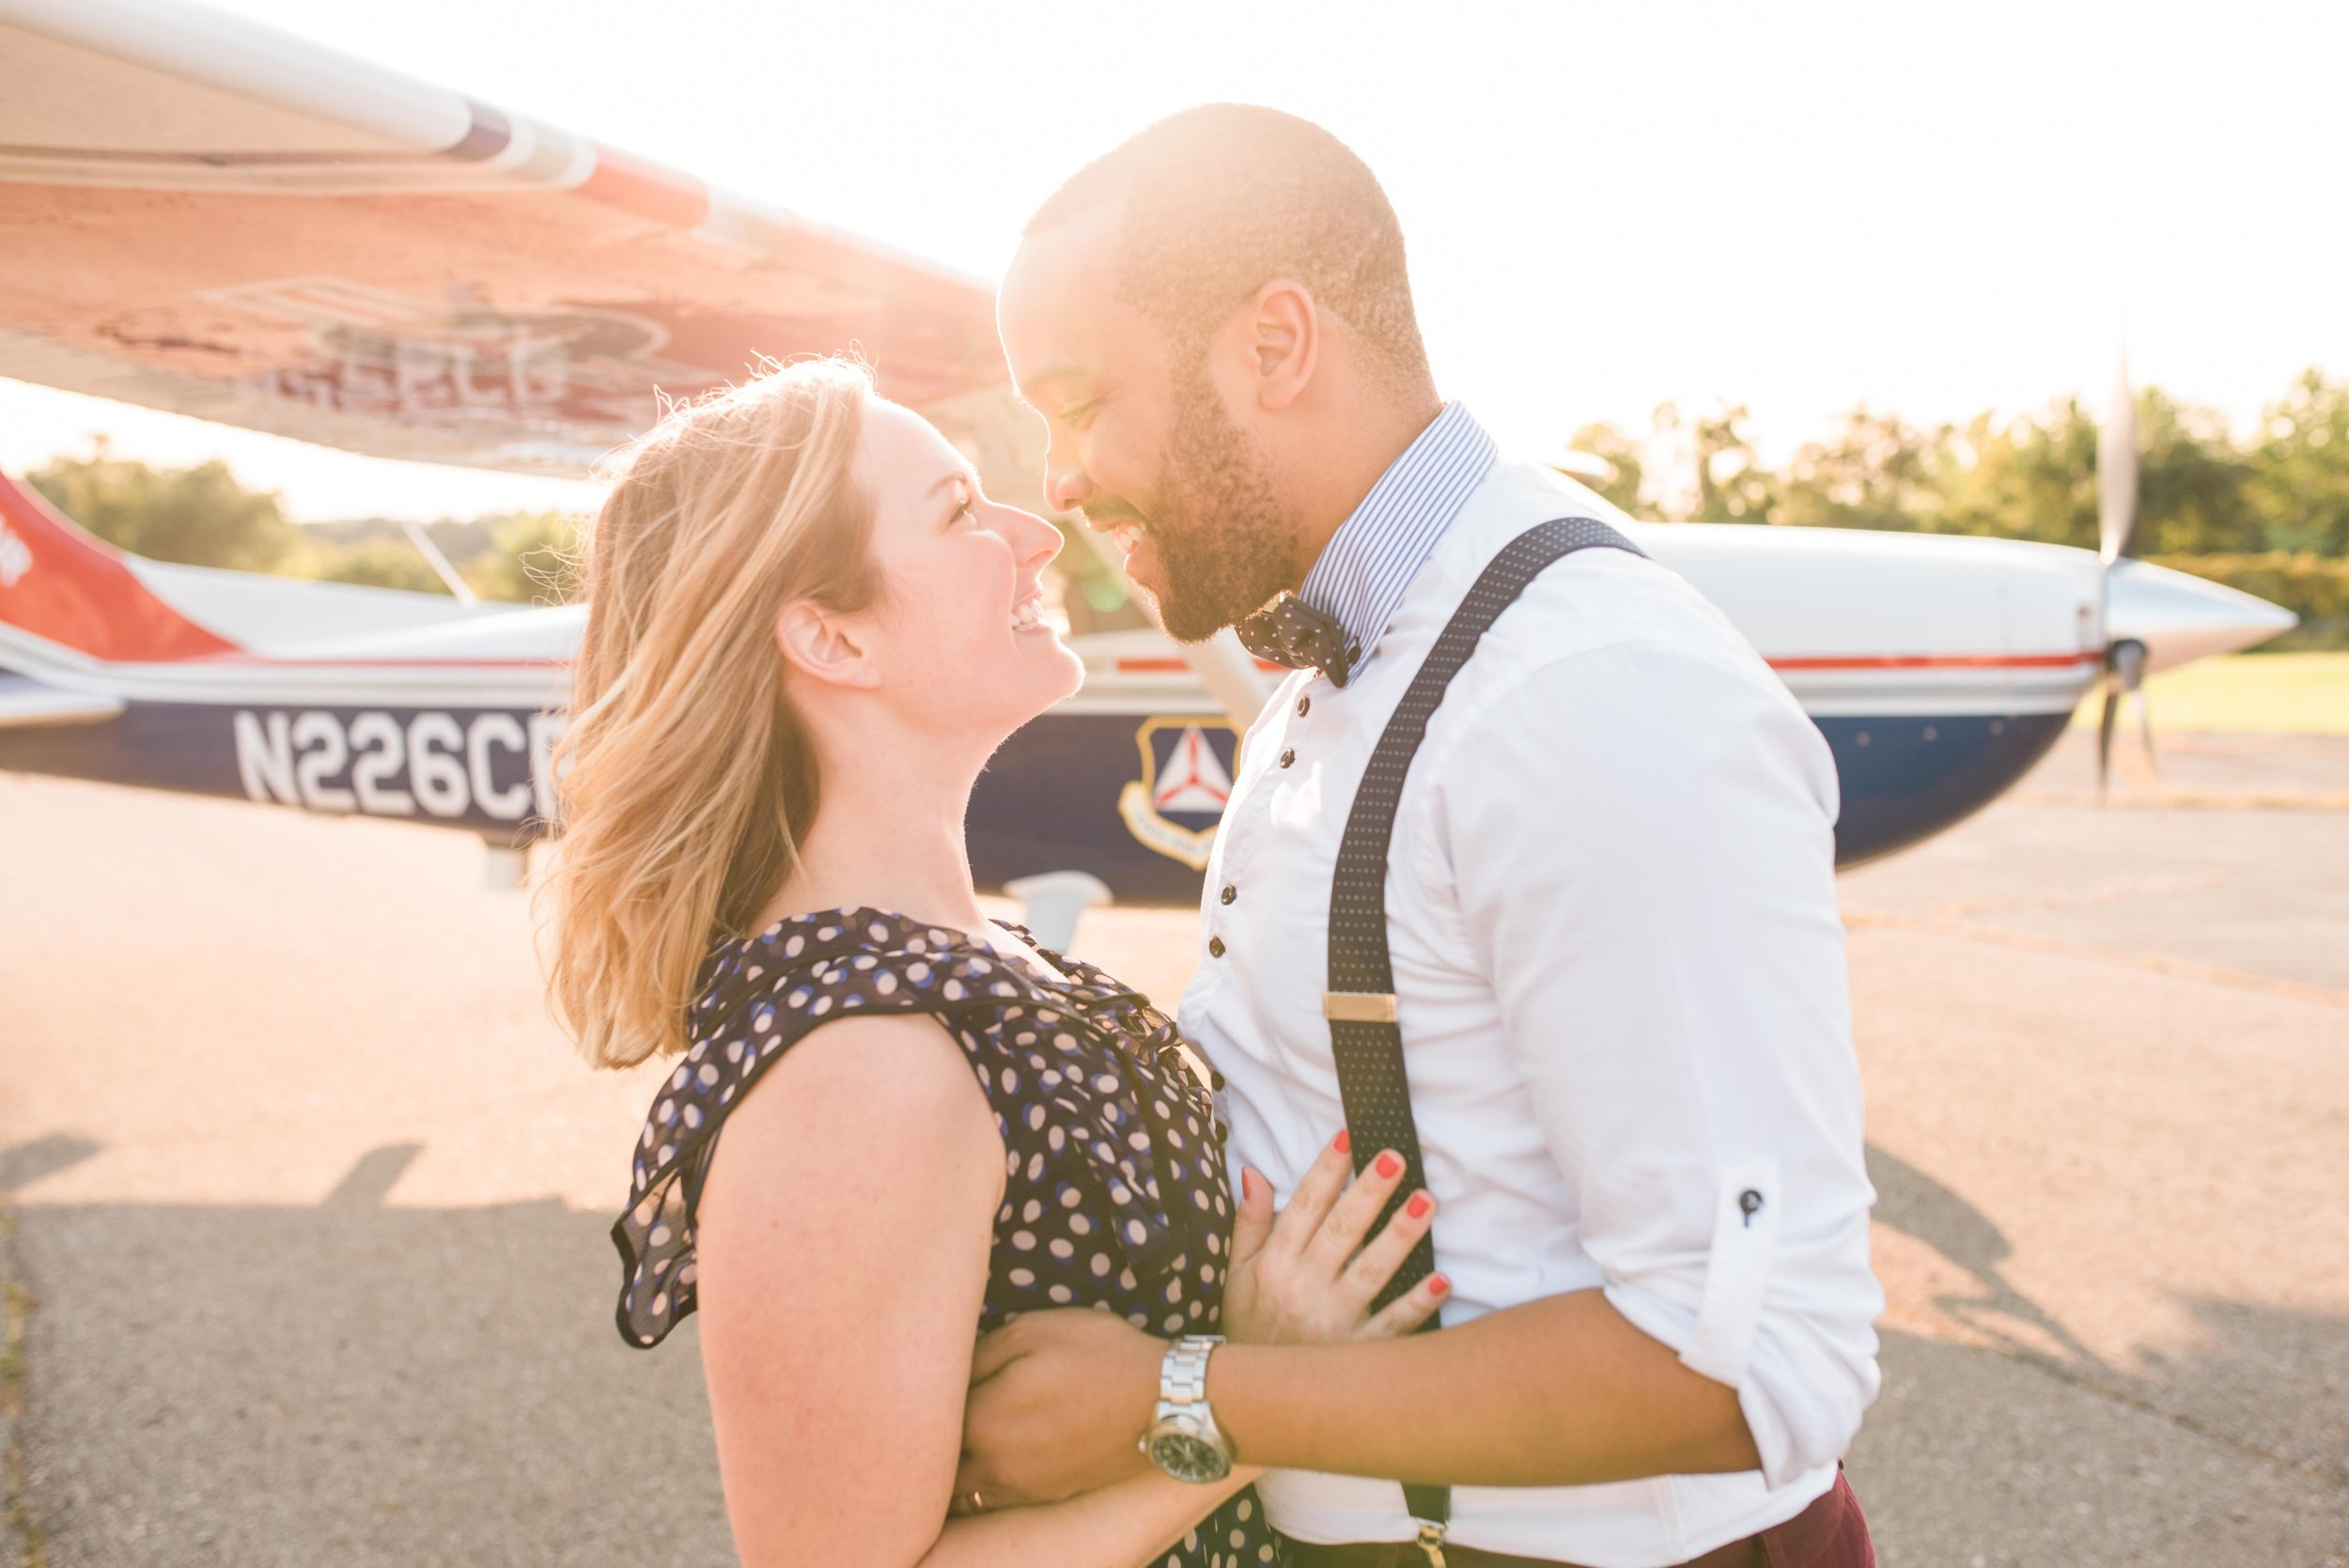 Pittsburgh engagement photographer, Listen to the photographer